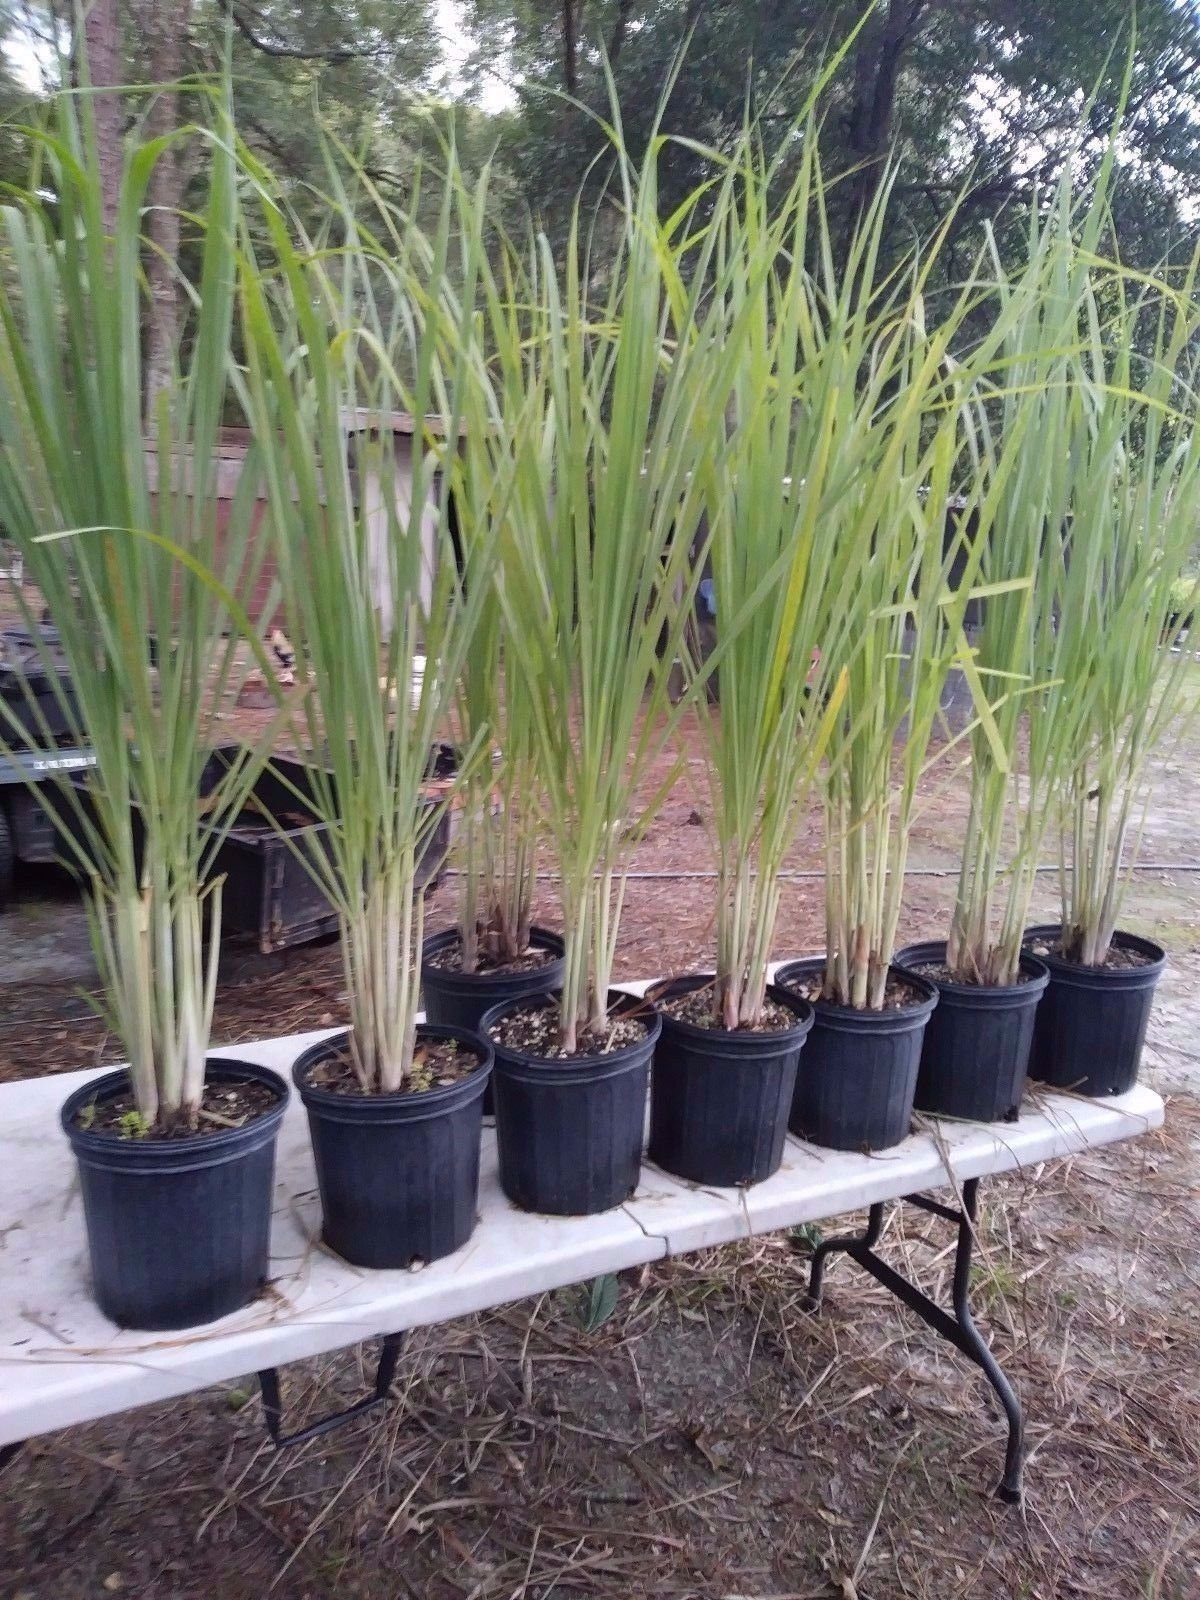 Lemongrass 6 Live Plants Each 4In to 7In Tall fully rooted